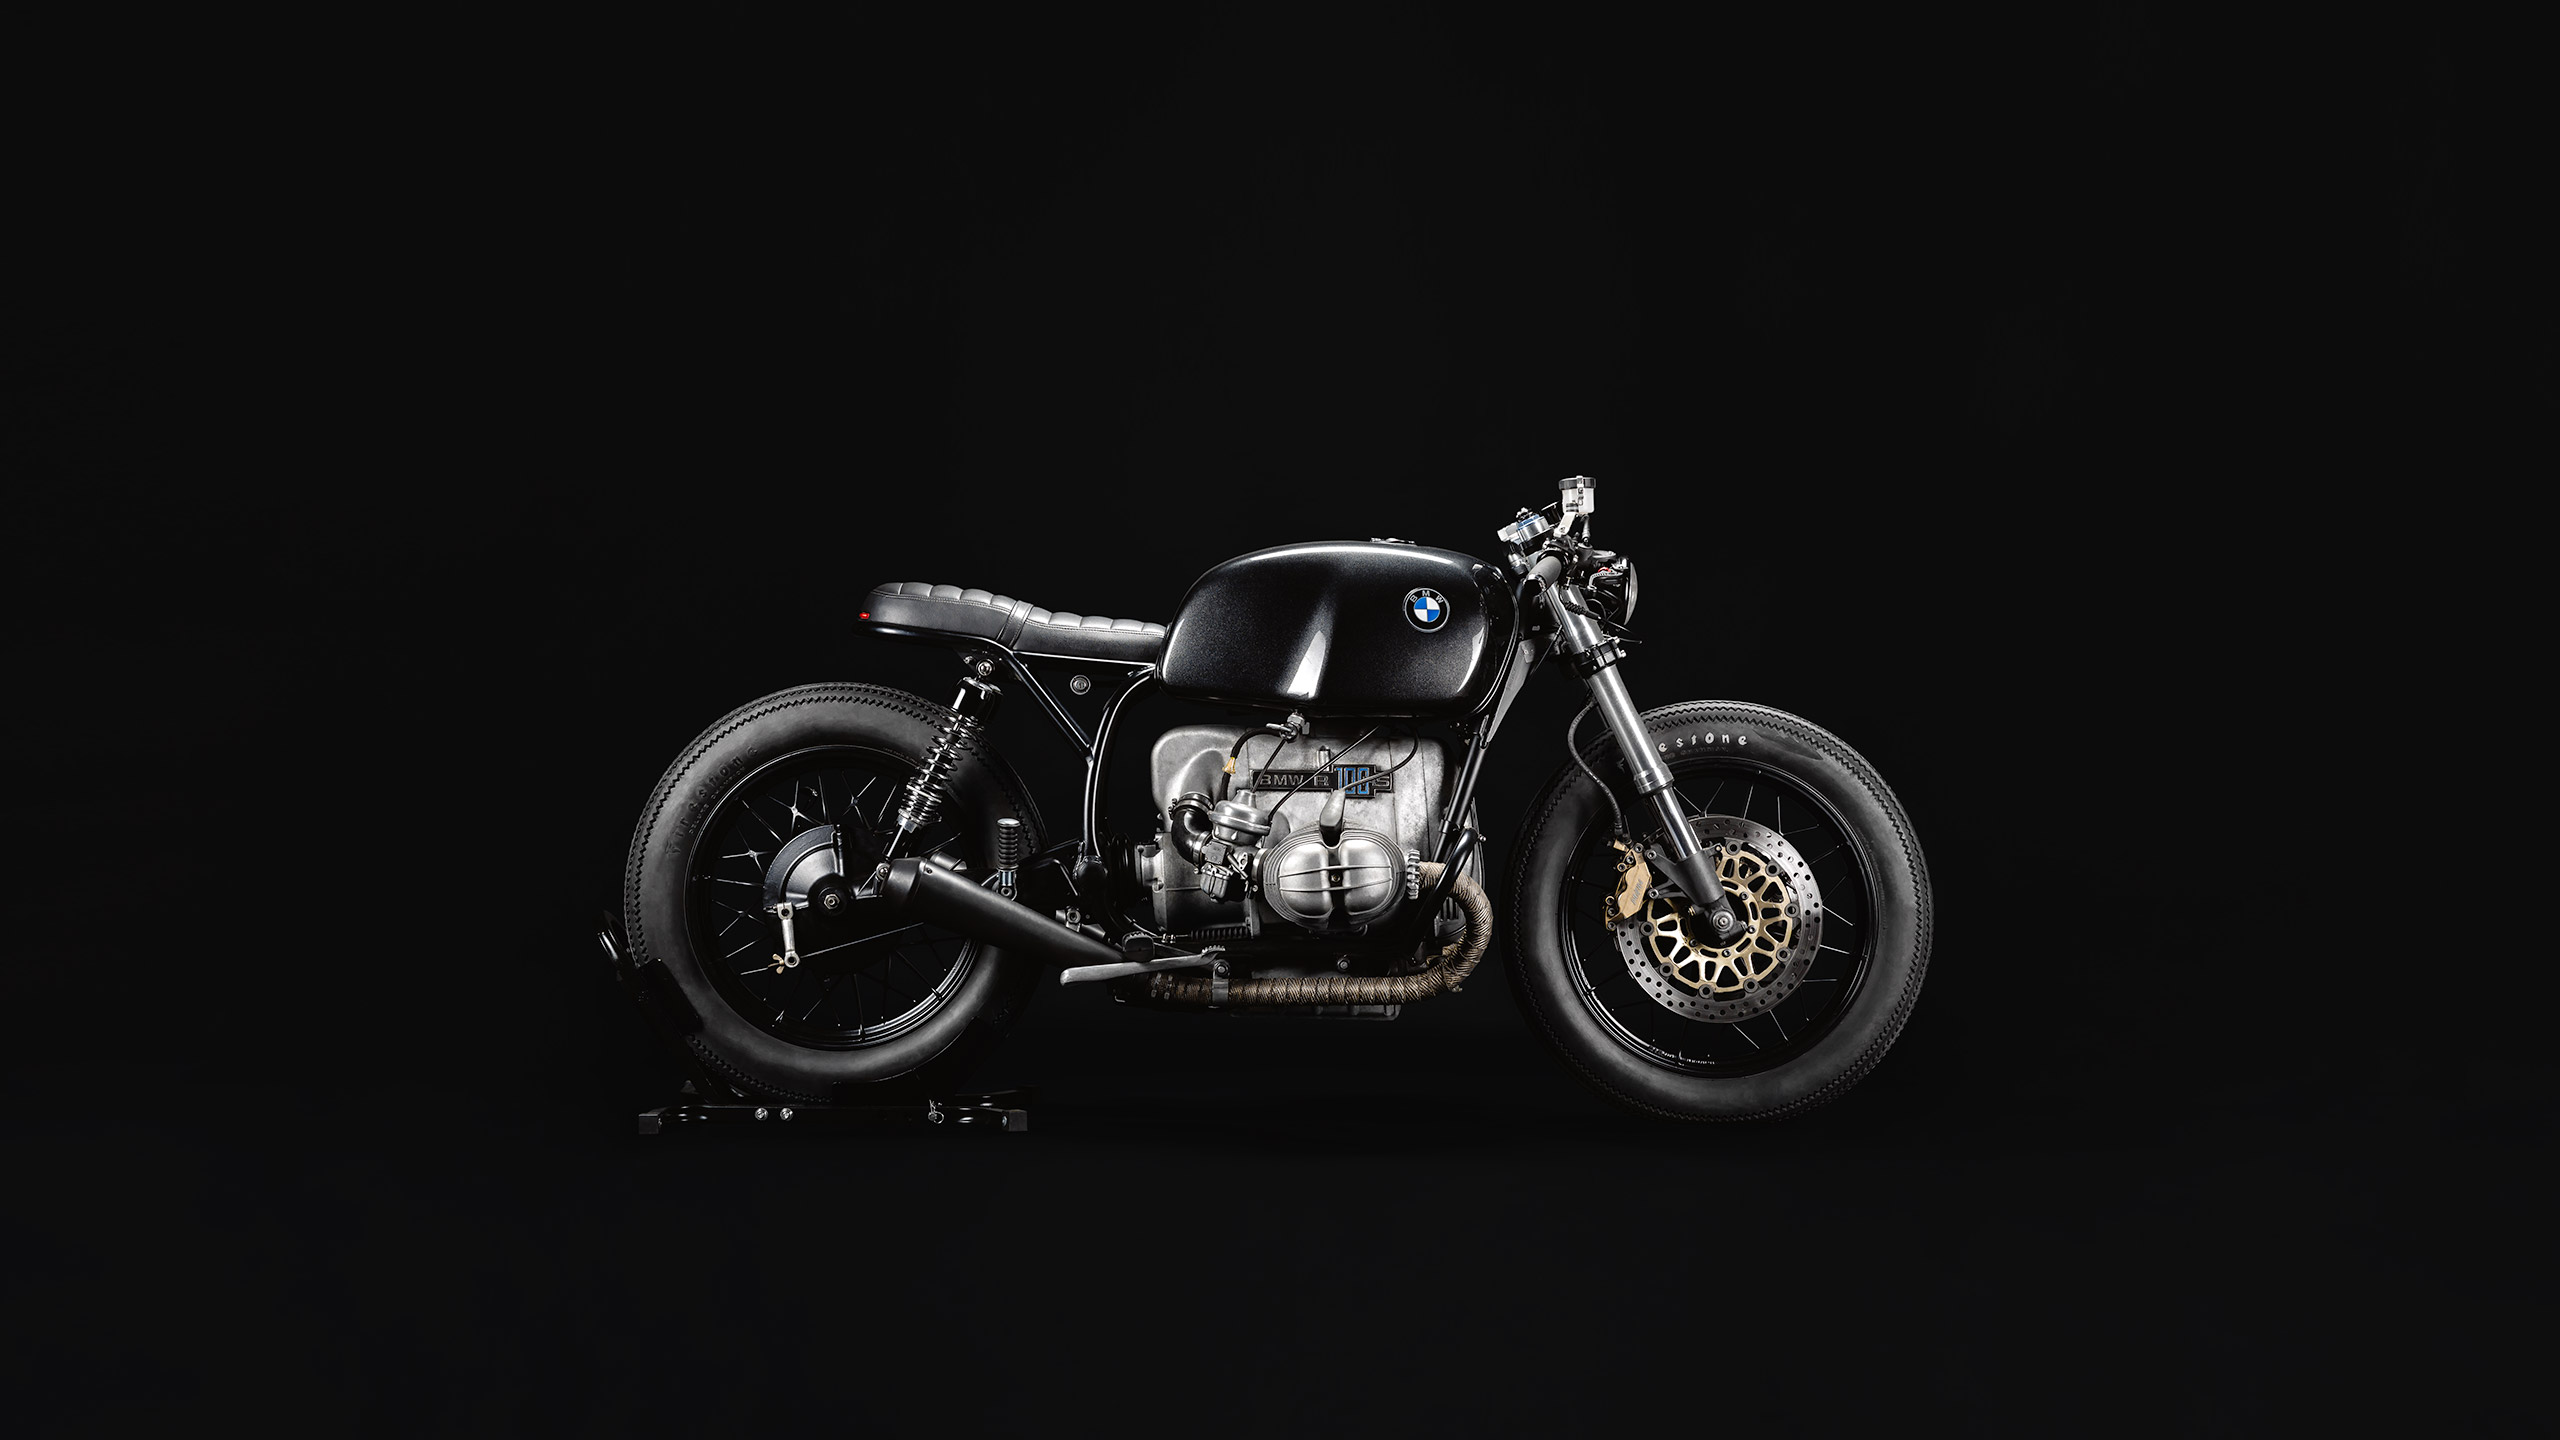 BMW R100 RS Brat Cafe by Differs